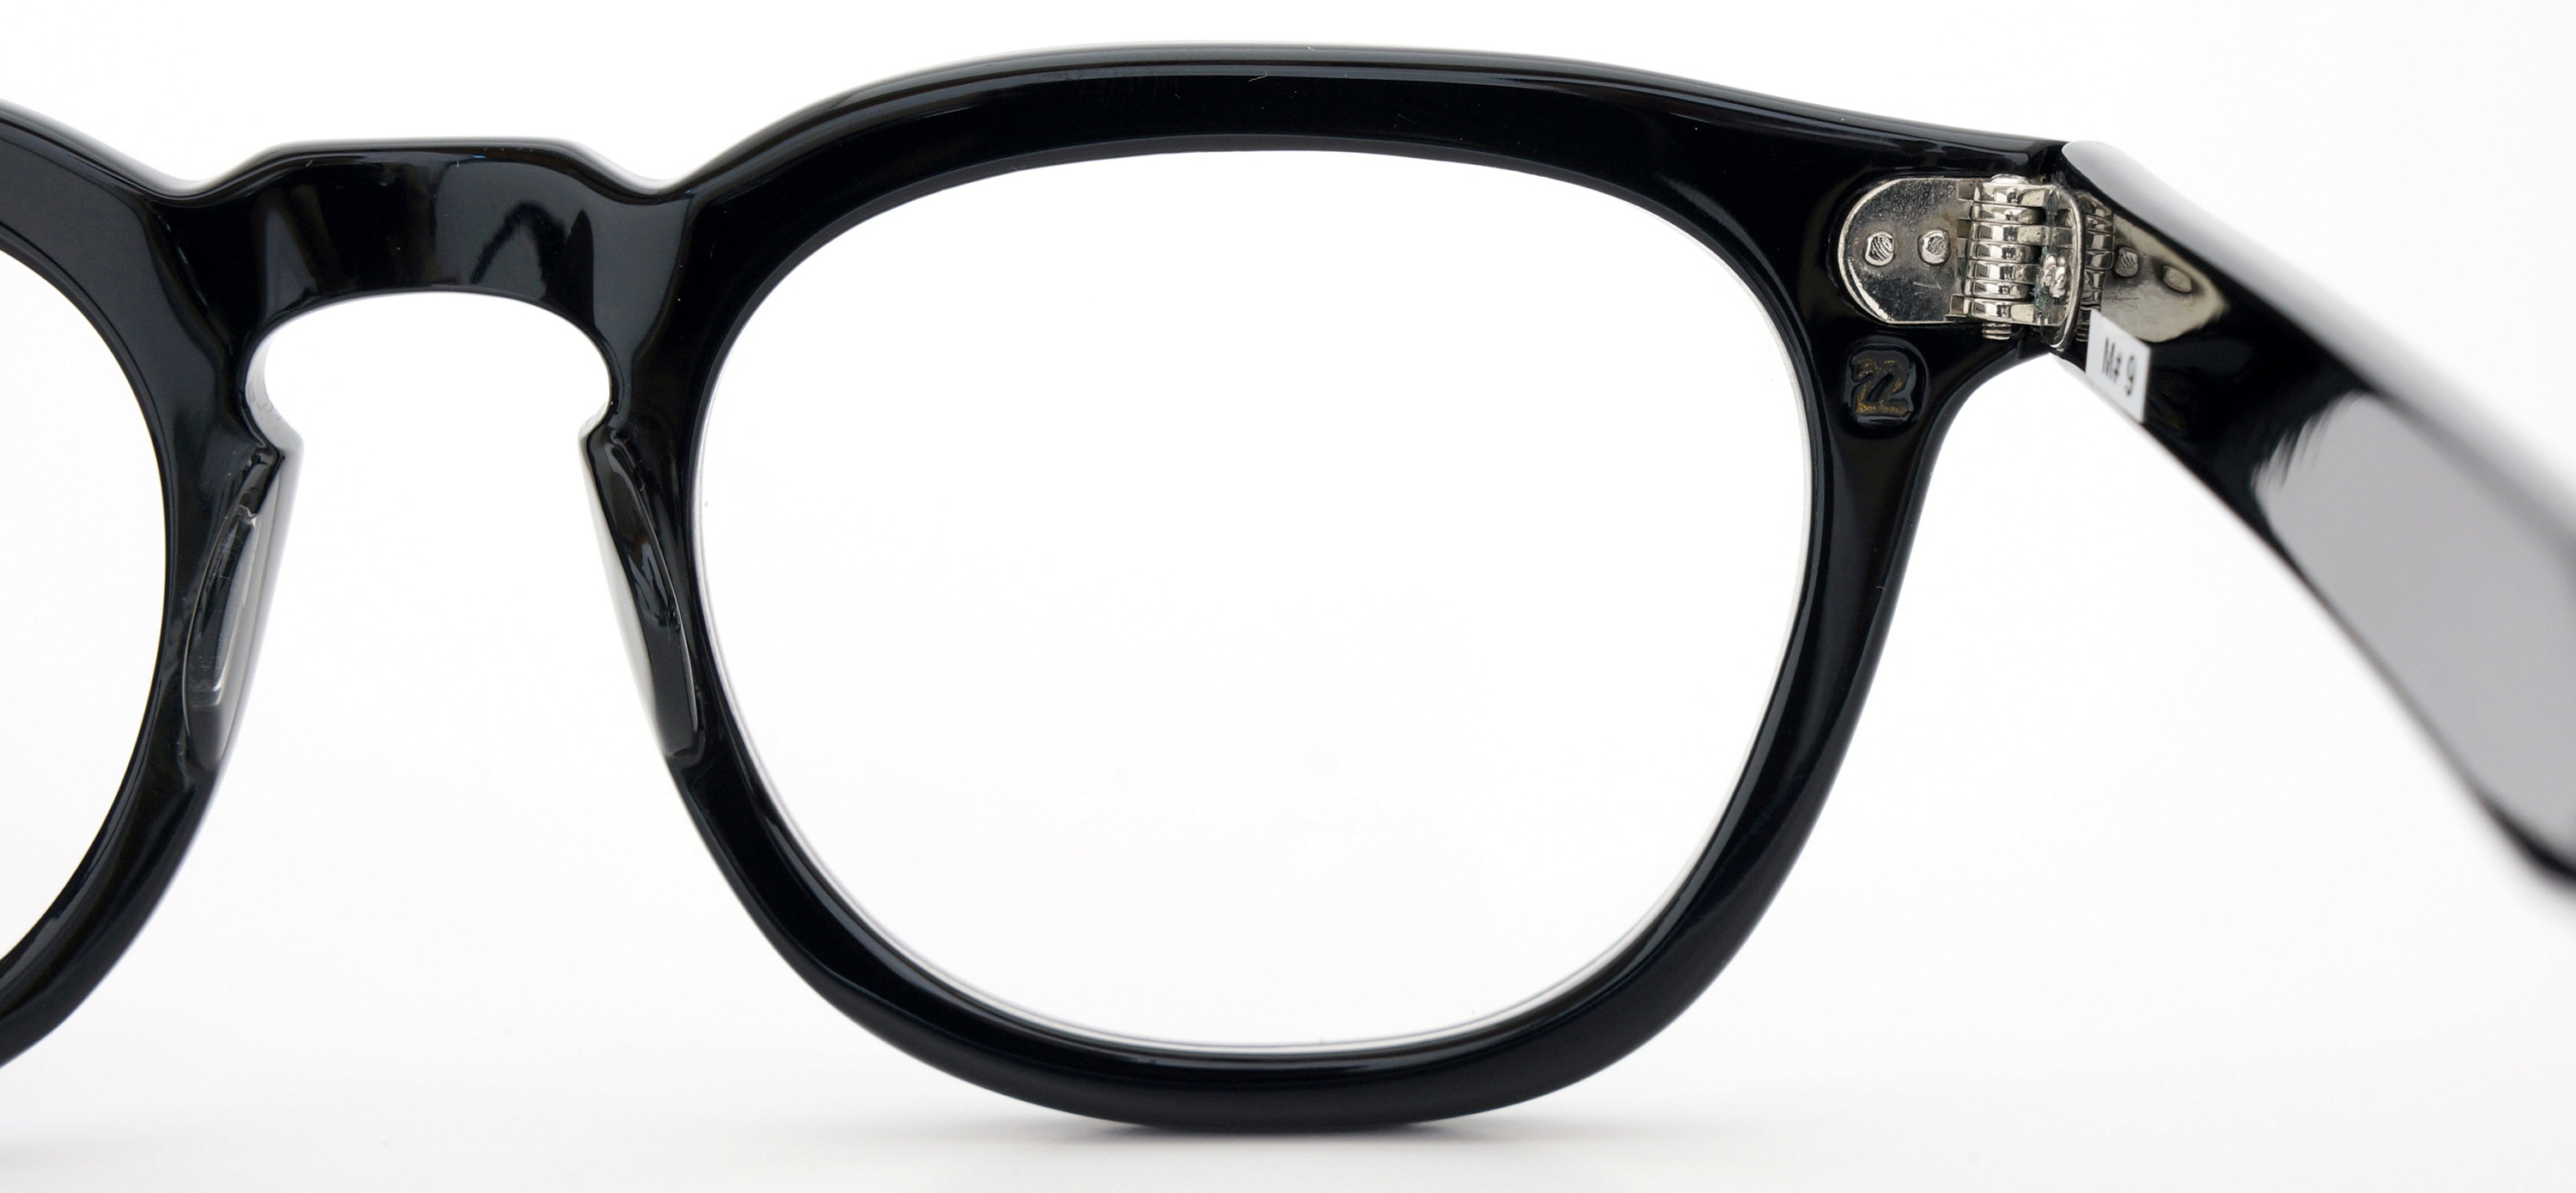 The Spectacle メガネ 1950s-70s TART OPTICAL ARNEL(FRAME USA) BLACK 48-22 イメージ13